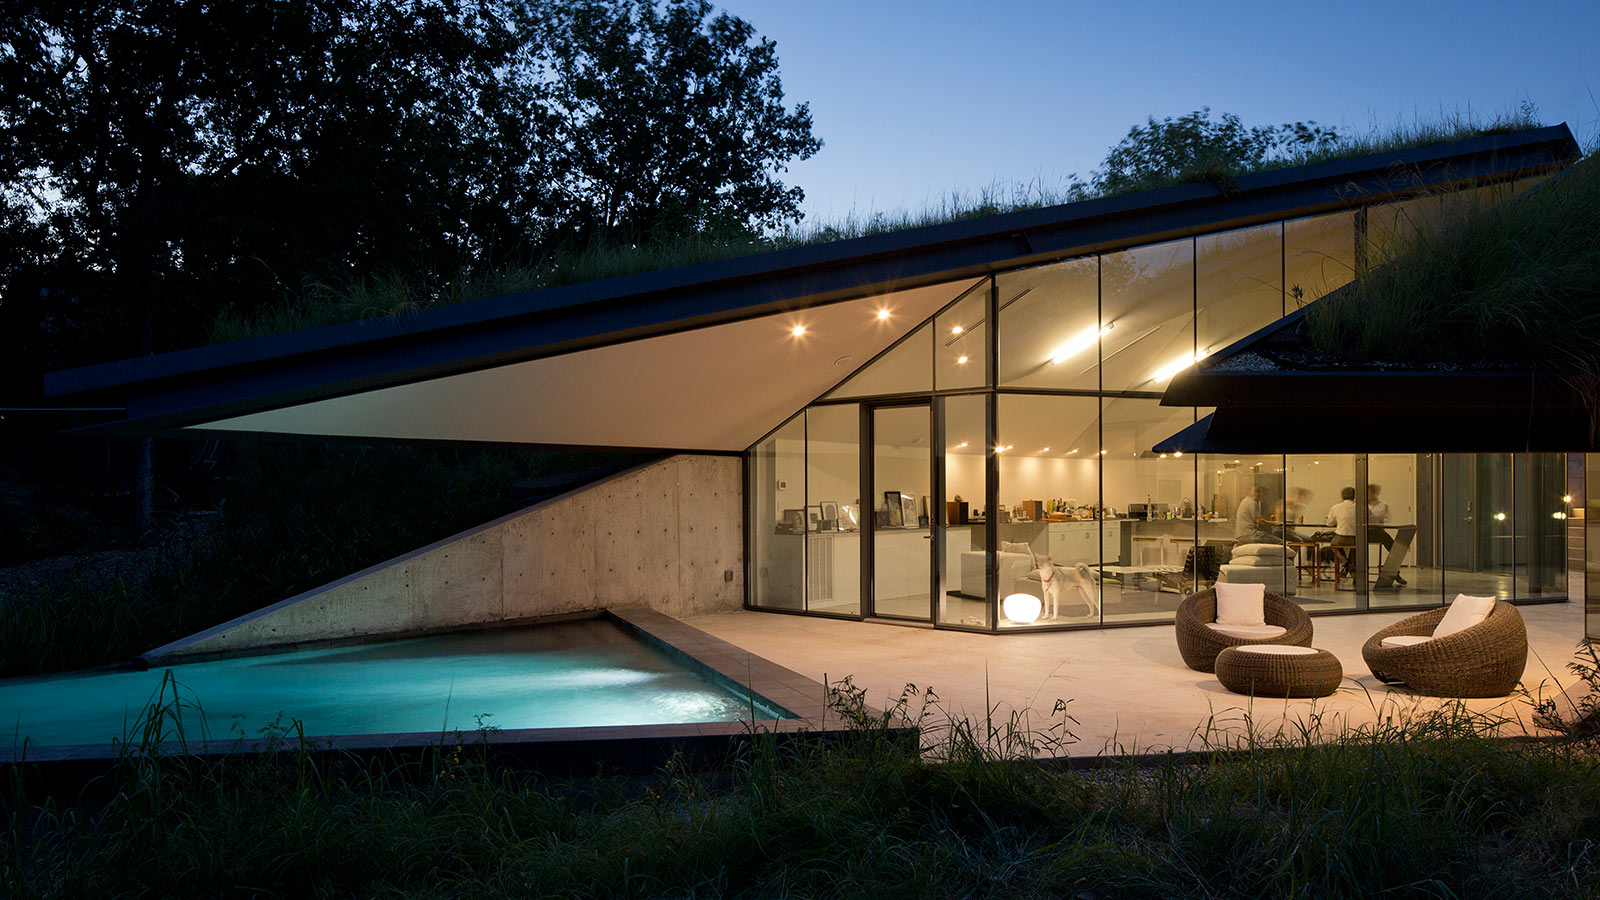 Futuristic House Glamorous Edgeland Residence A Futuristic House With A Smart Pool Fit For A Decorating Design